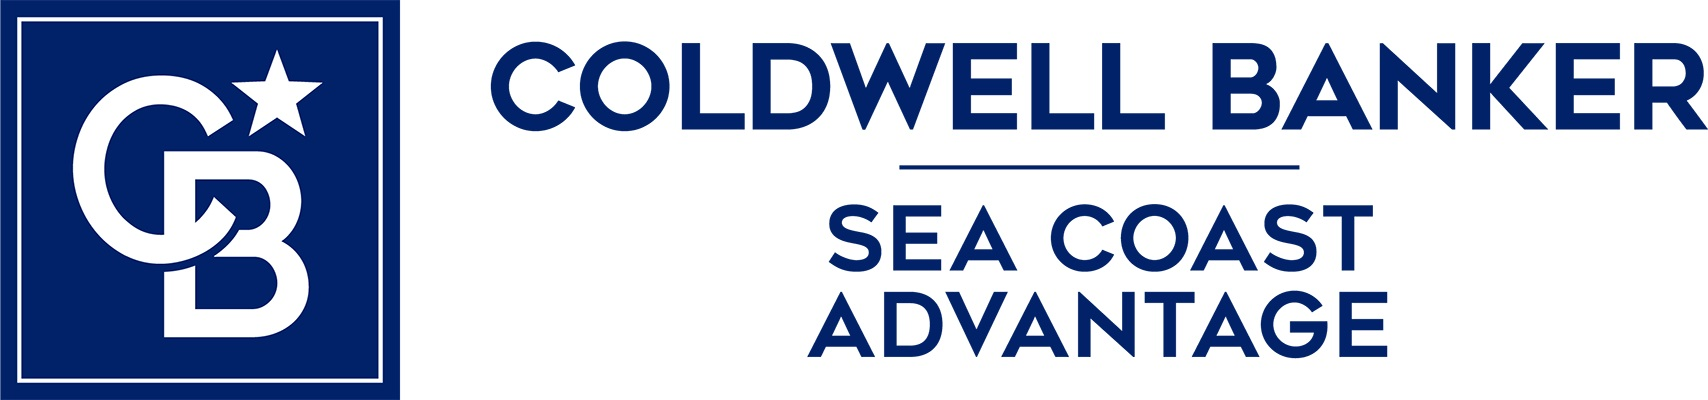 Hank Troscianiec - Coldwell Banker Sea Coast Advantage Realty Logo